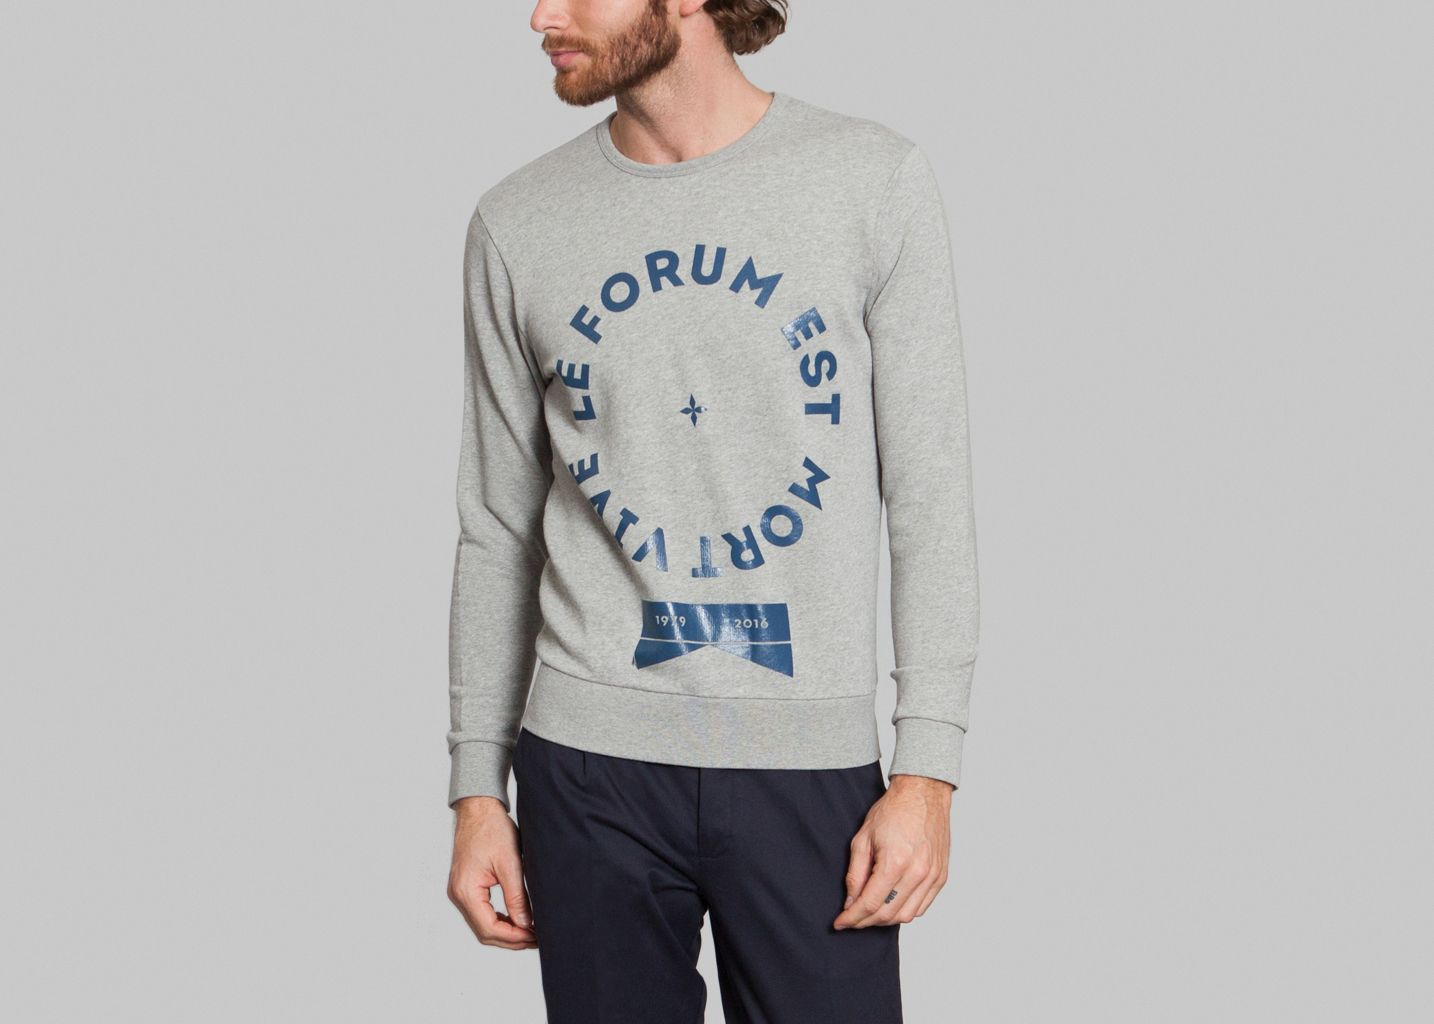 Sweatshirt Forum - Commune de Paris